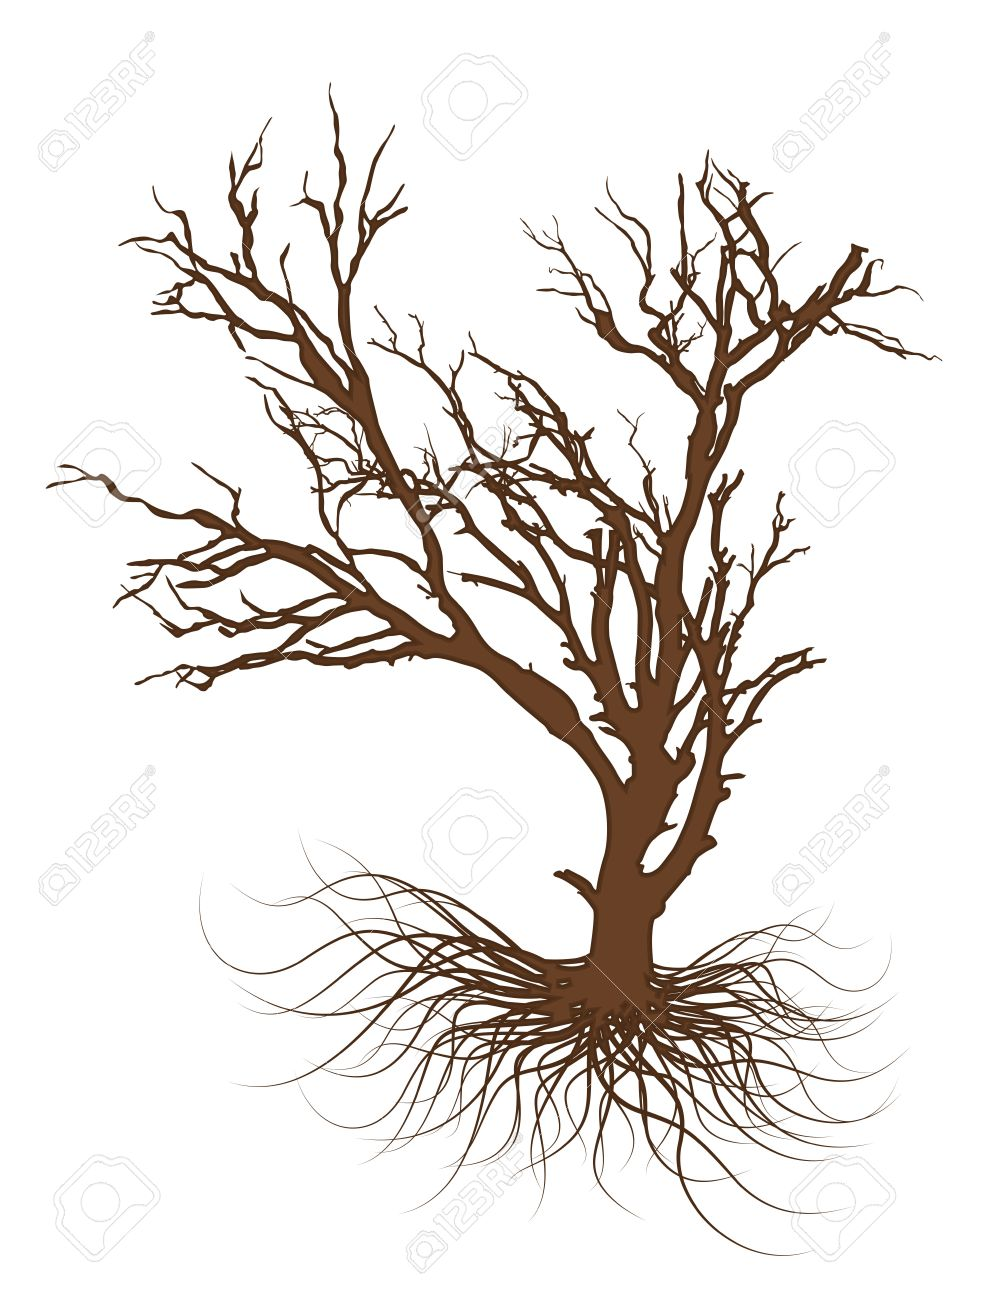 Drawing Of Dead Tree Royalty Free Cliparts Vectors And Stock Illustration Image 36251718